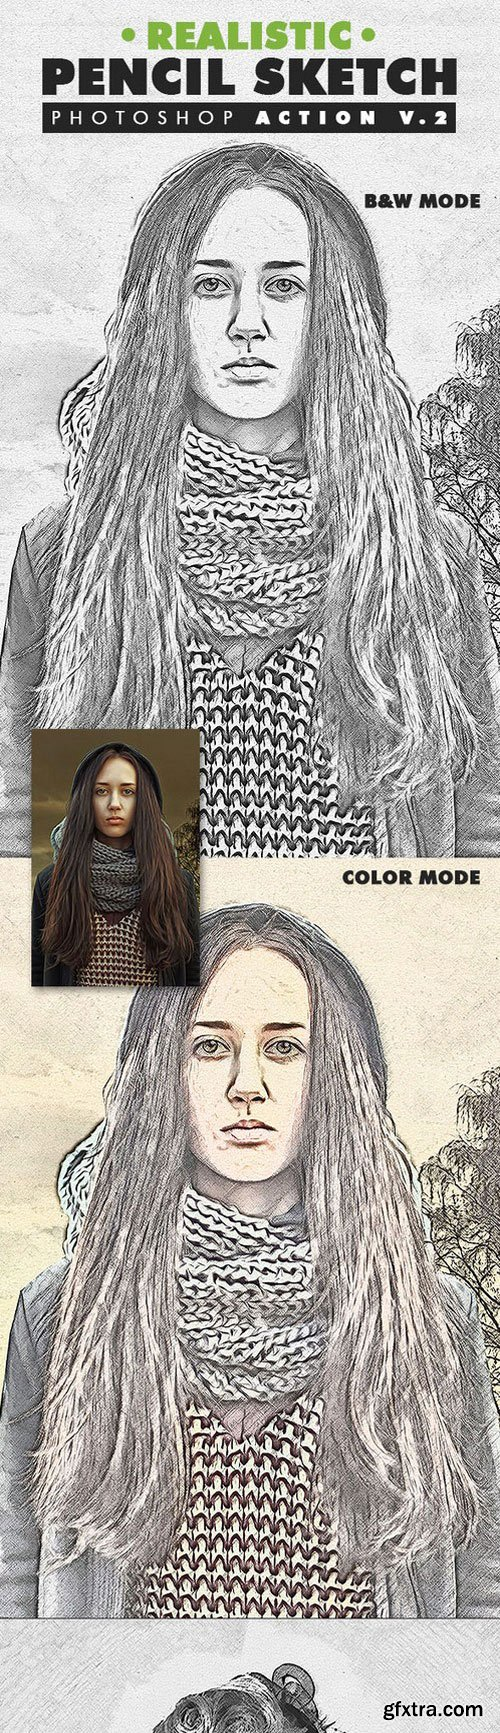 Graphicriver - Realistic Pencil Sketch Photoshop Action Vol.2 19553148